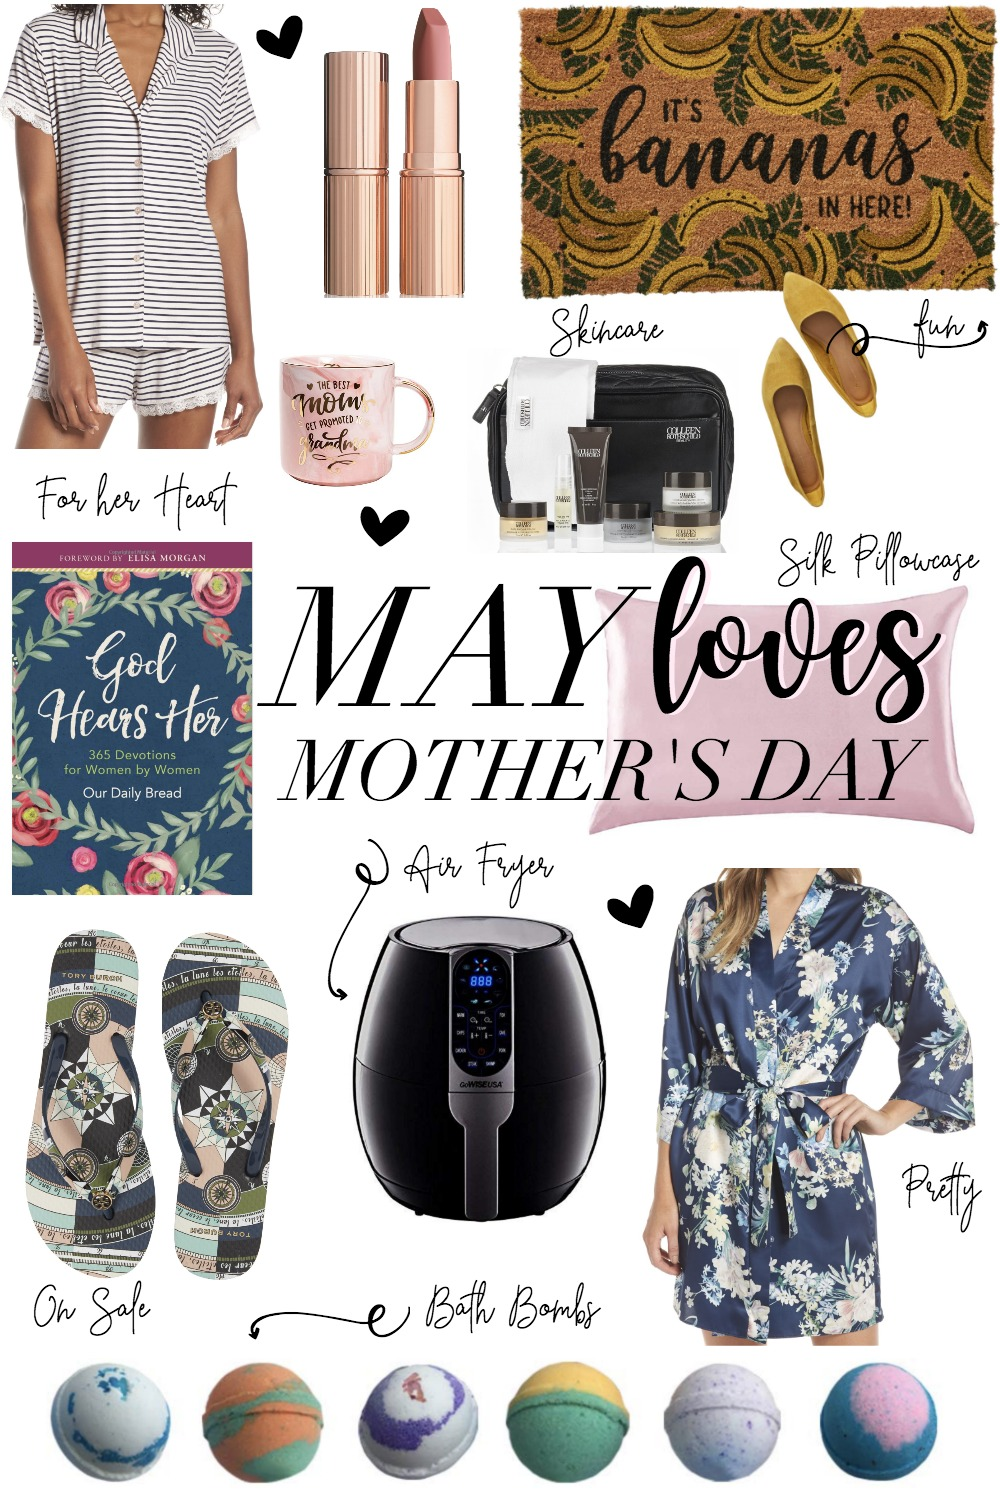 May Loves Mother's Day Gift Ideas